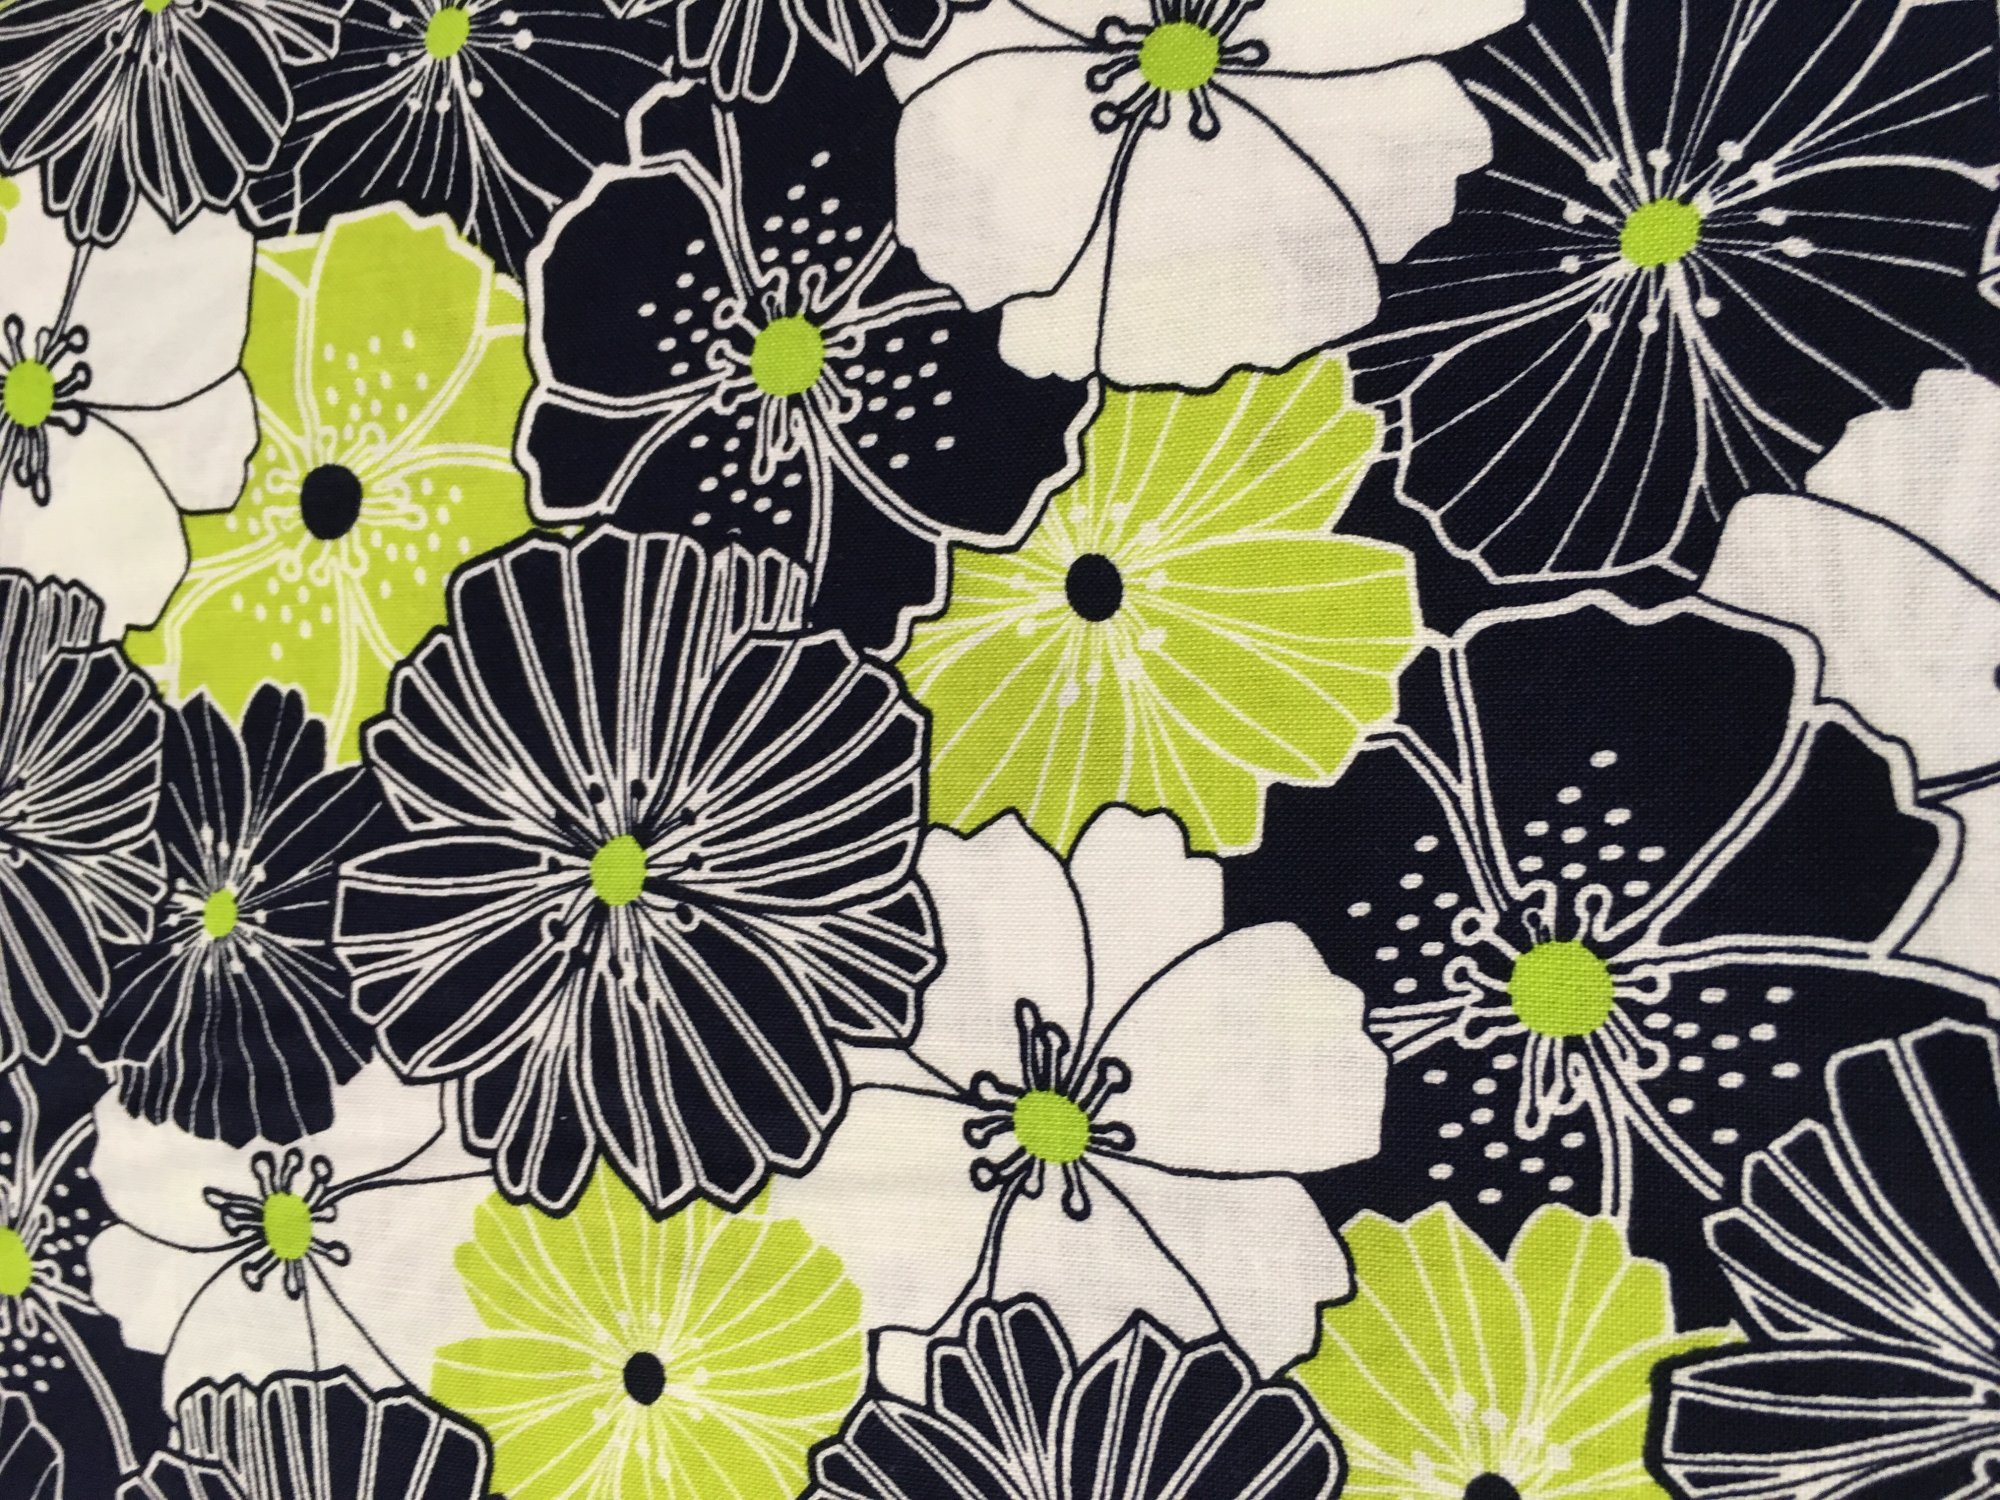 Citron Twist Green, white, and black flowers